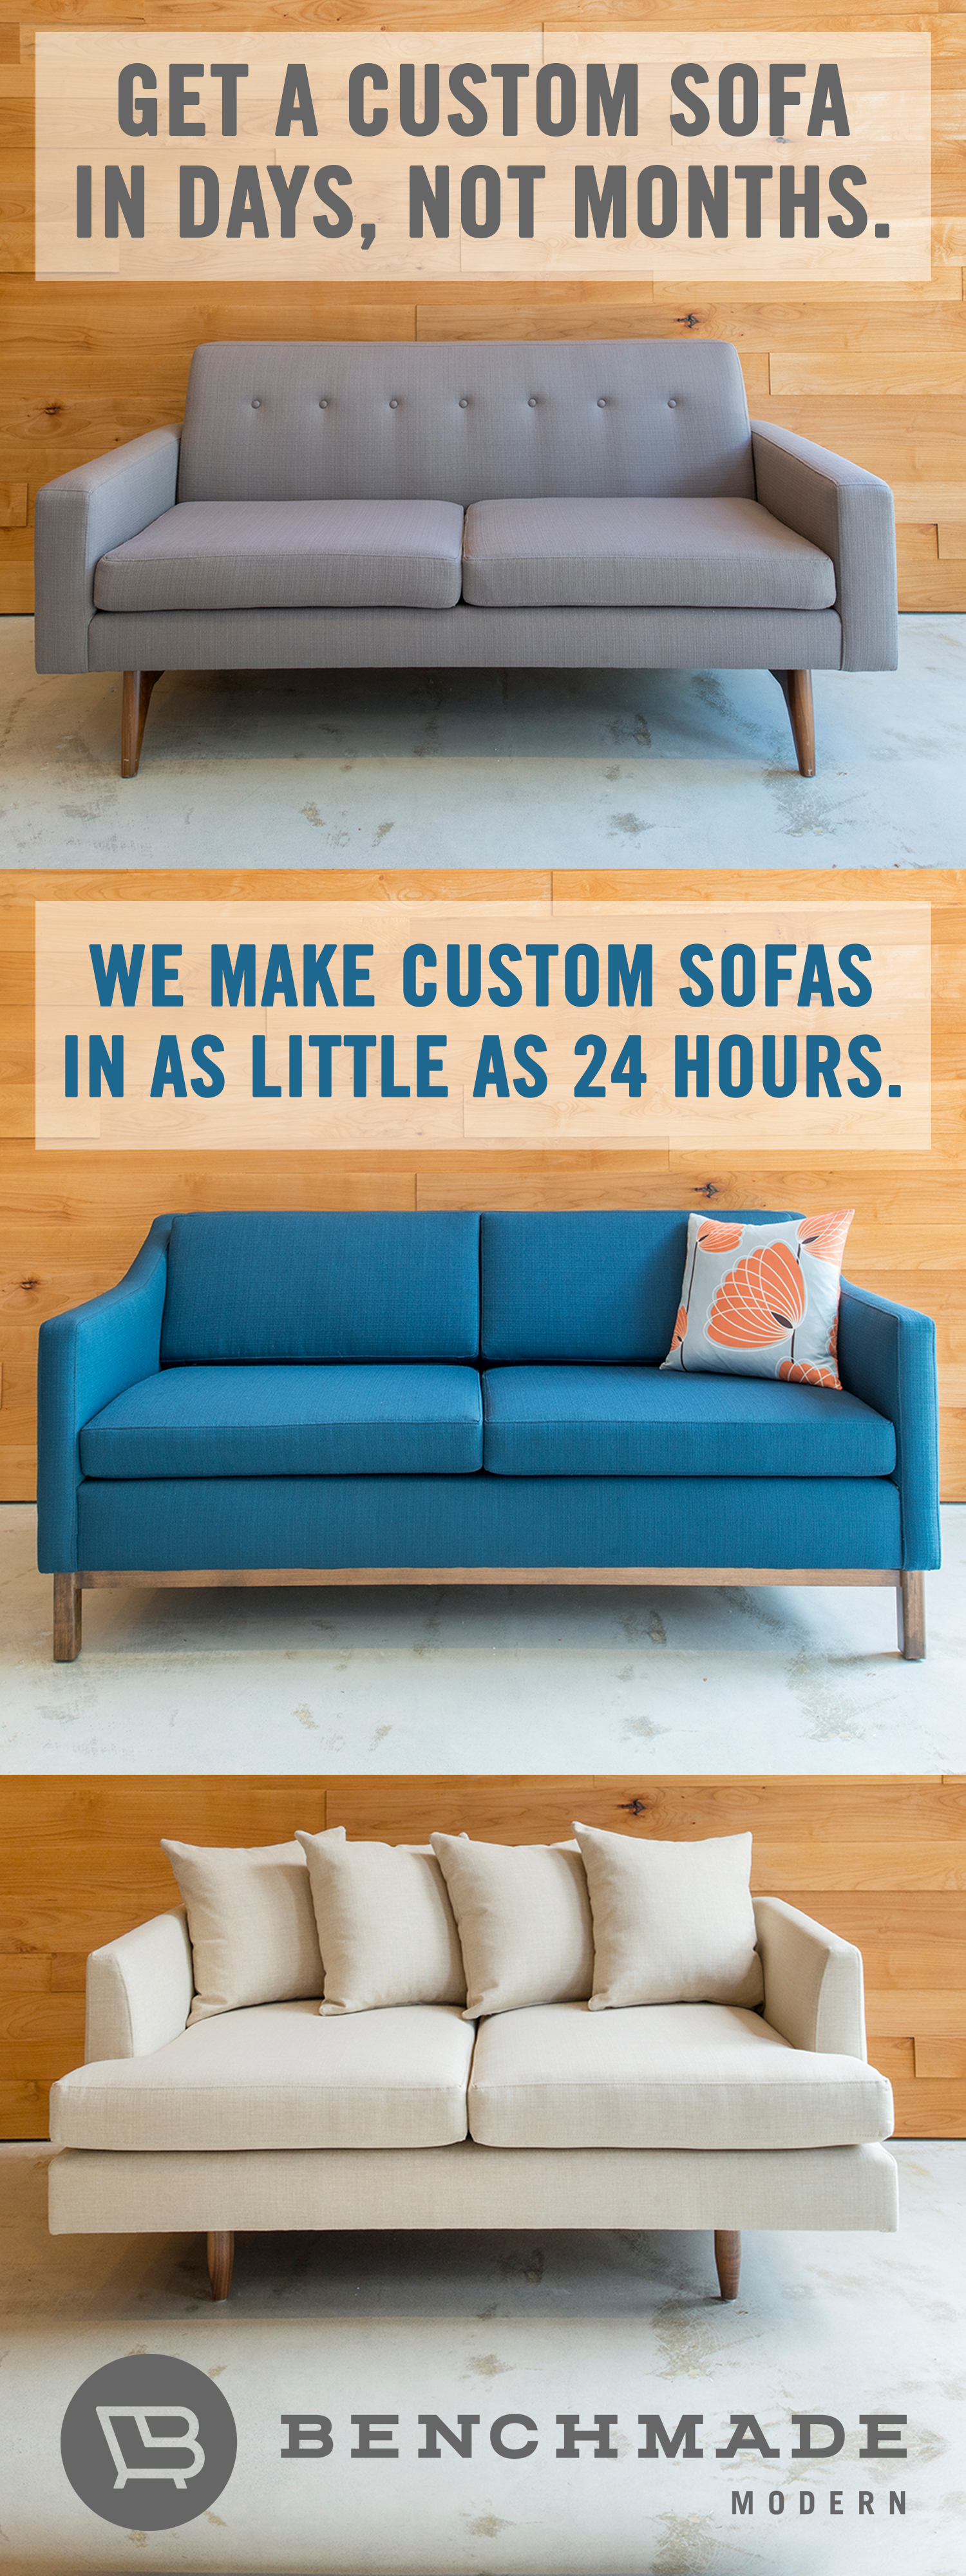 We Think Thereu0027s A Big Problem With The Furniture Industry. There Are  Limited Customization Options